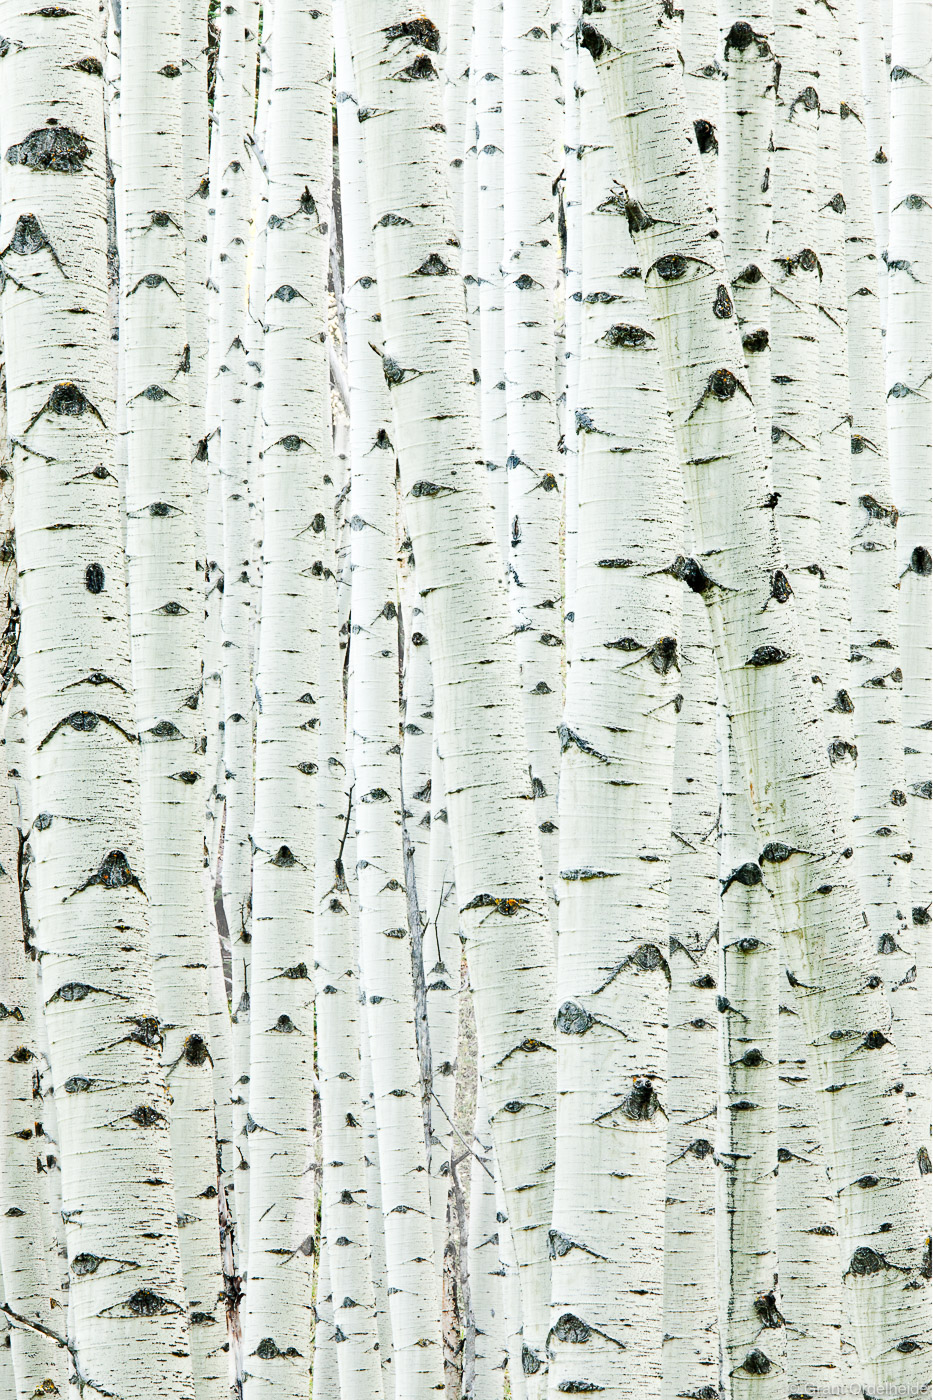 Details of aspen grove near Aspen Colorado.